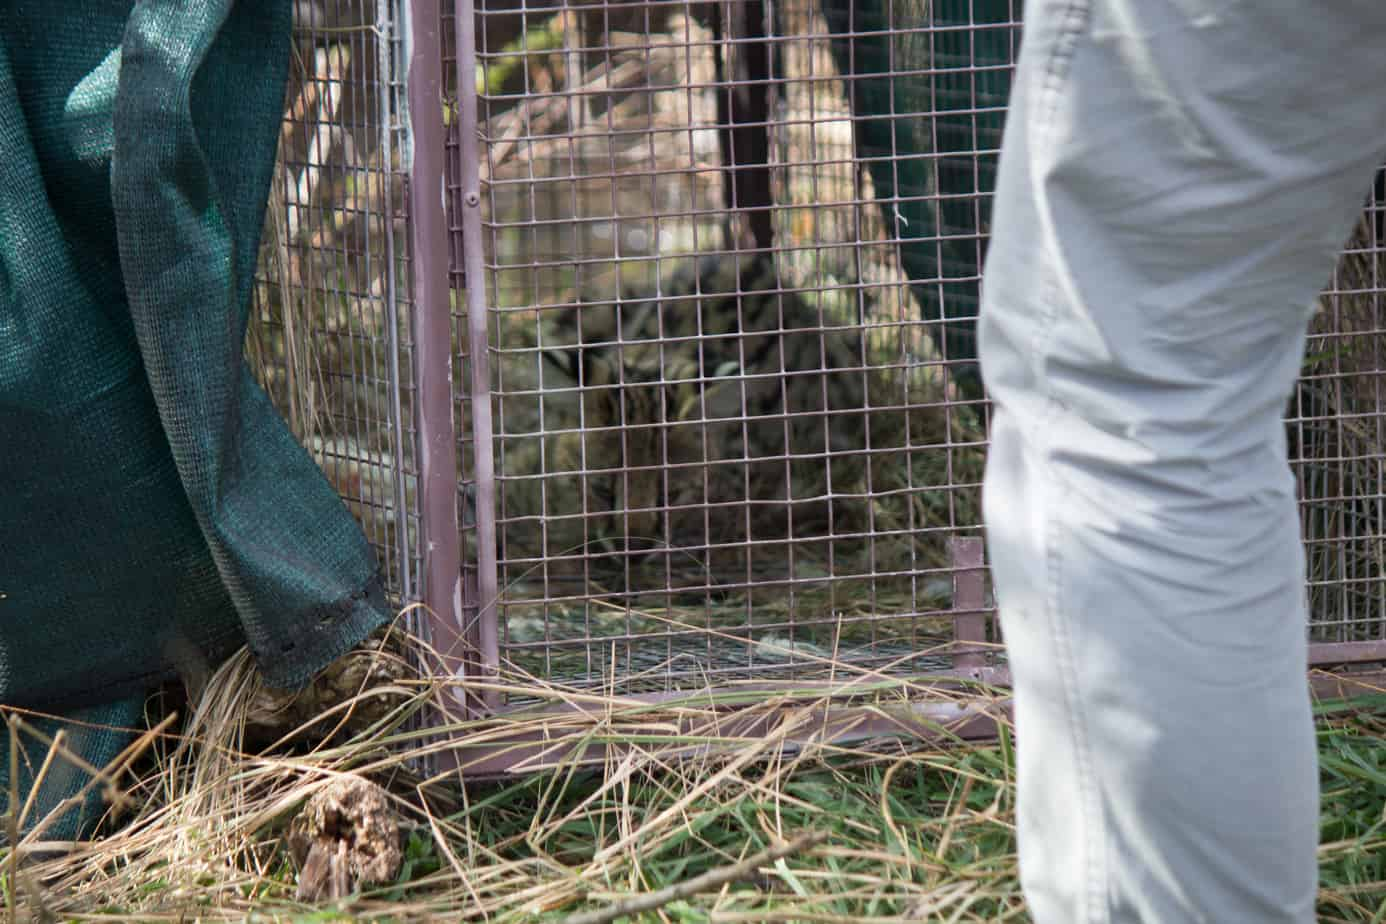 IMG 9035 1 - Servals & Caracals, Oh My!